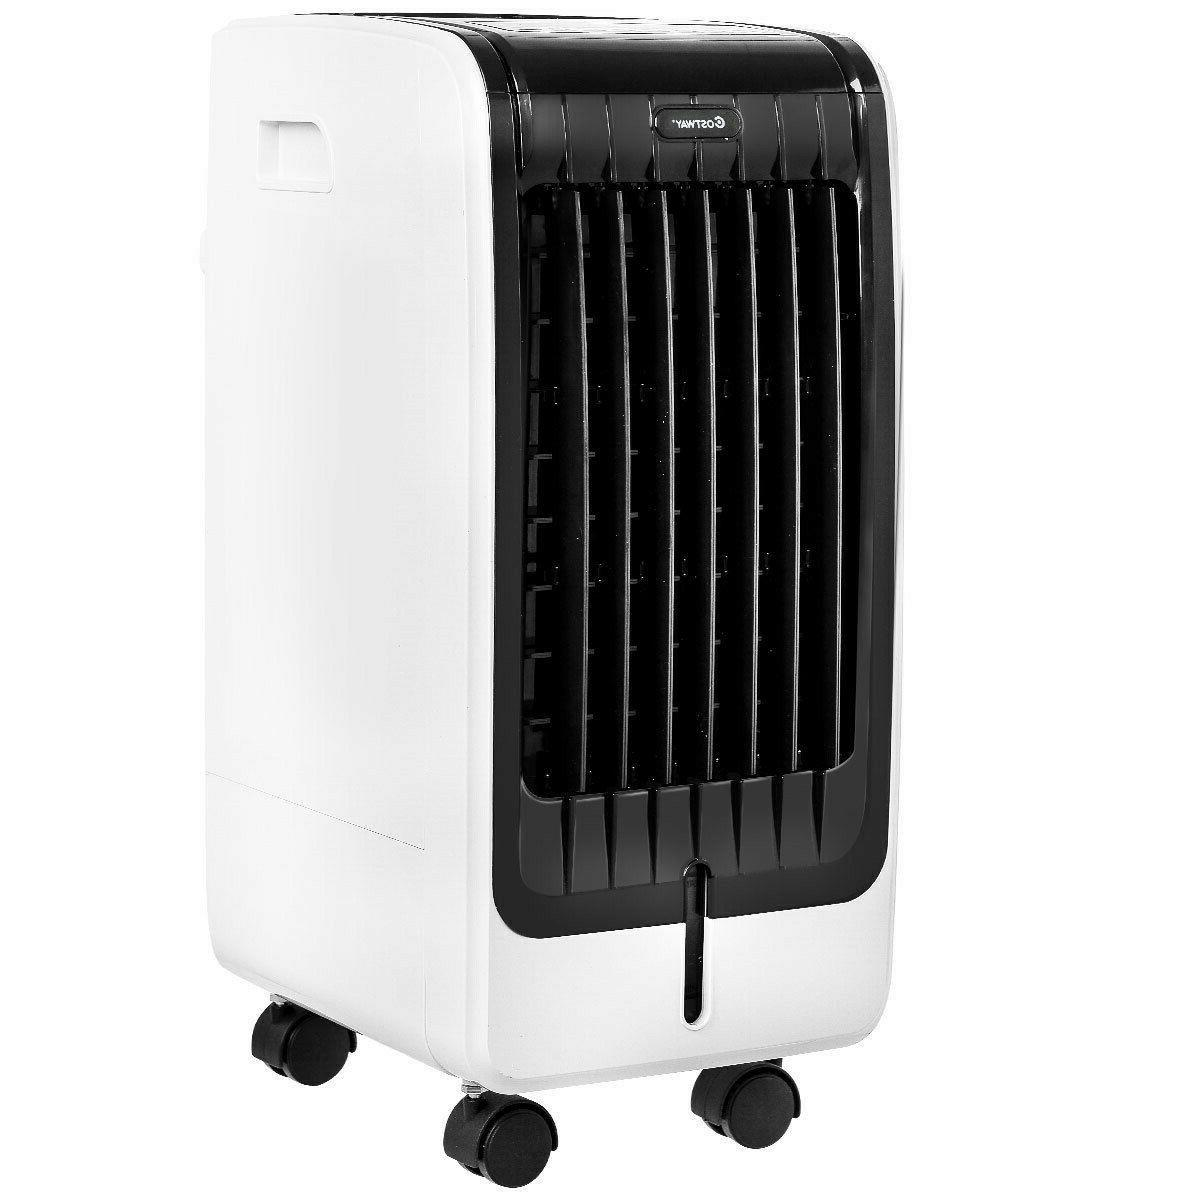 Portable Air Conditioner Evaporative Cooler Control Water